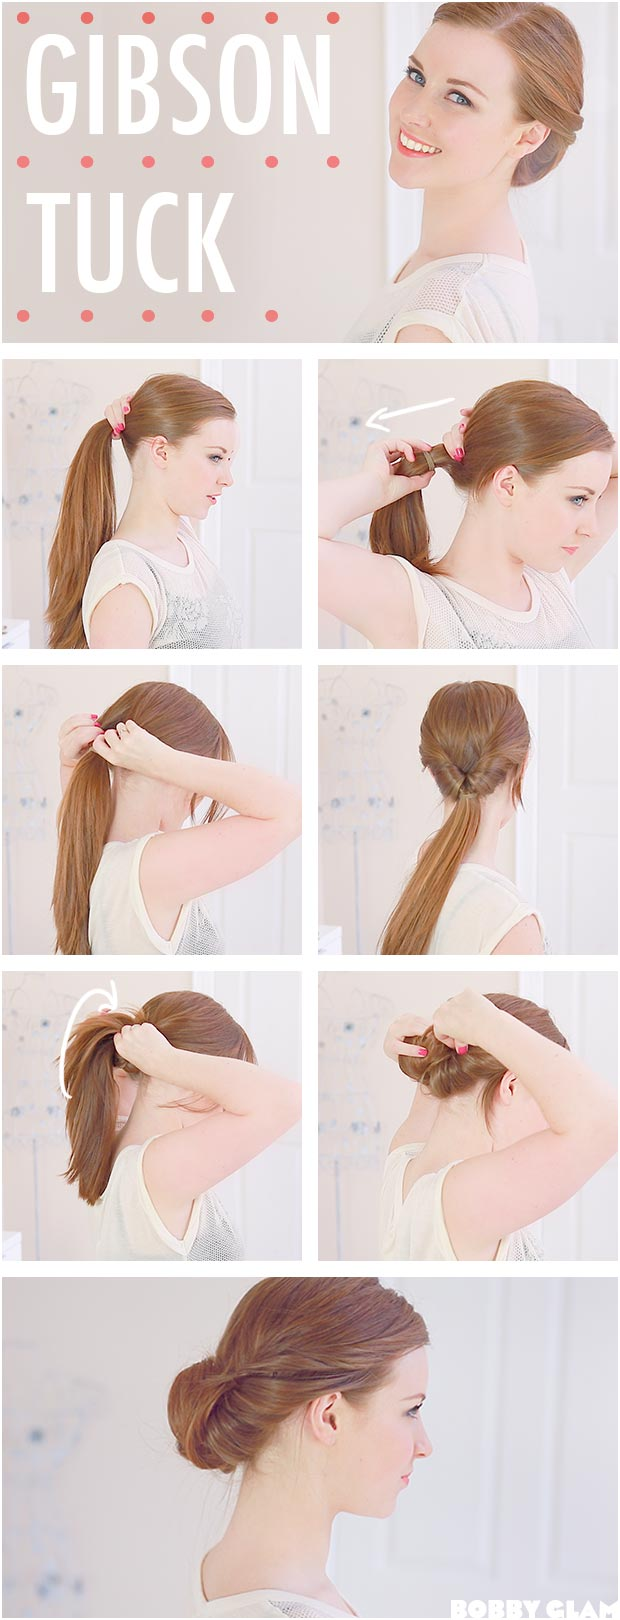 Gibson Tuck Hairstyle Tutorial